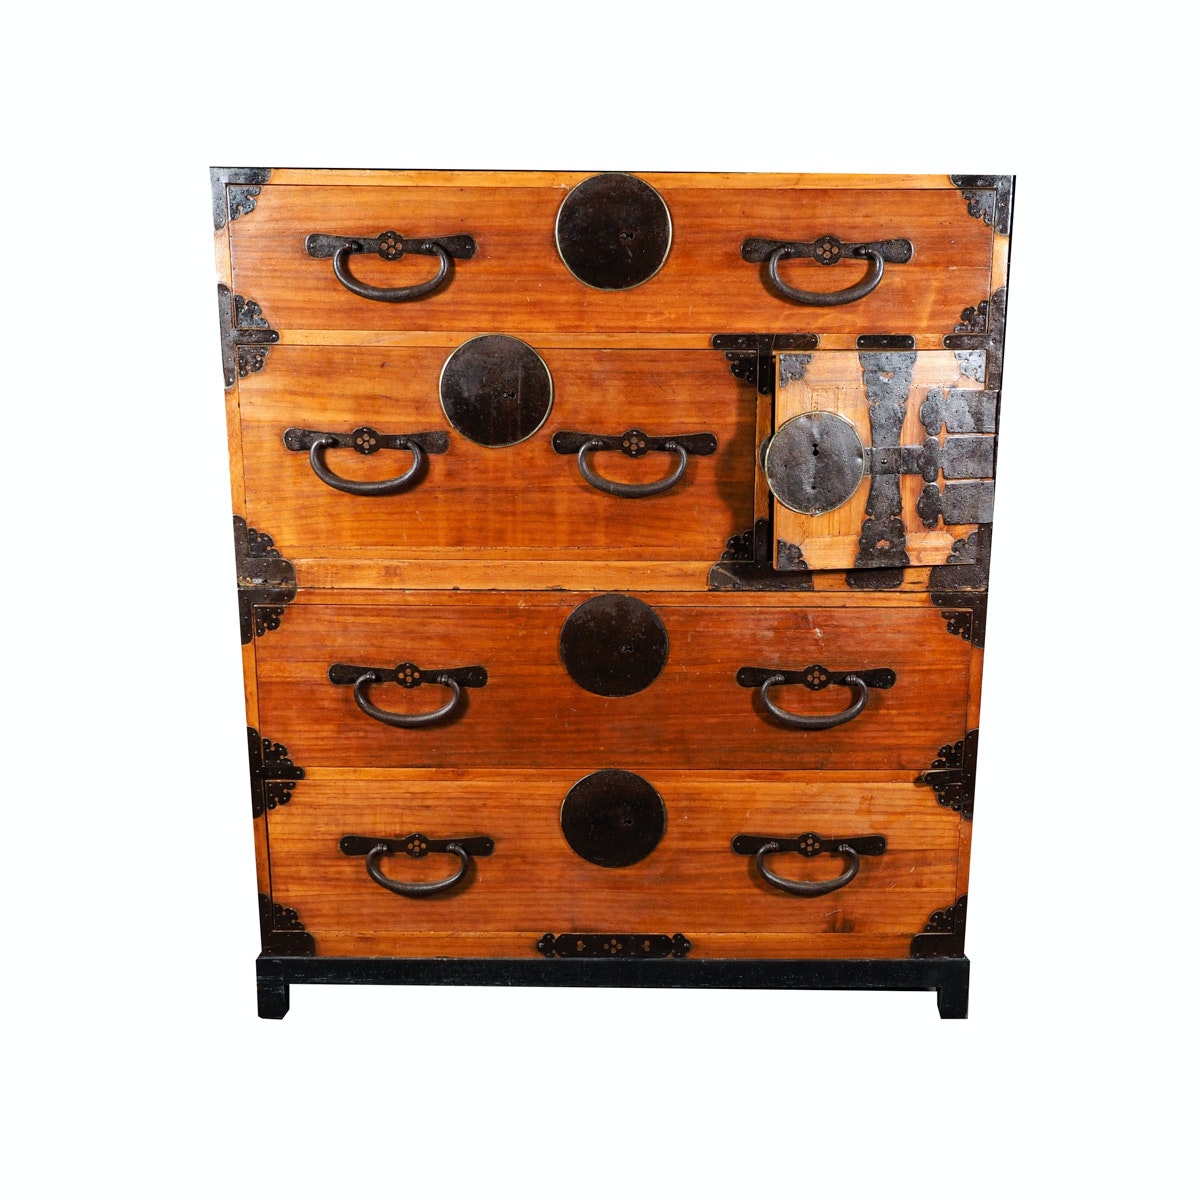 Circa 1900 Japanese Tansu Chest on Chest in Cypress Wood and Pine